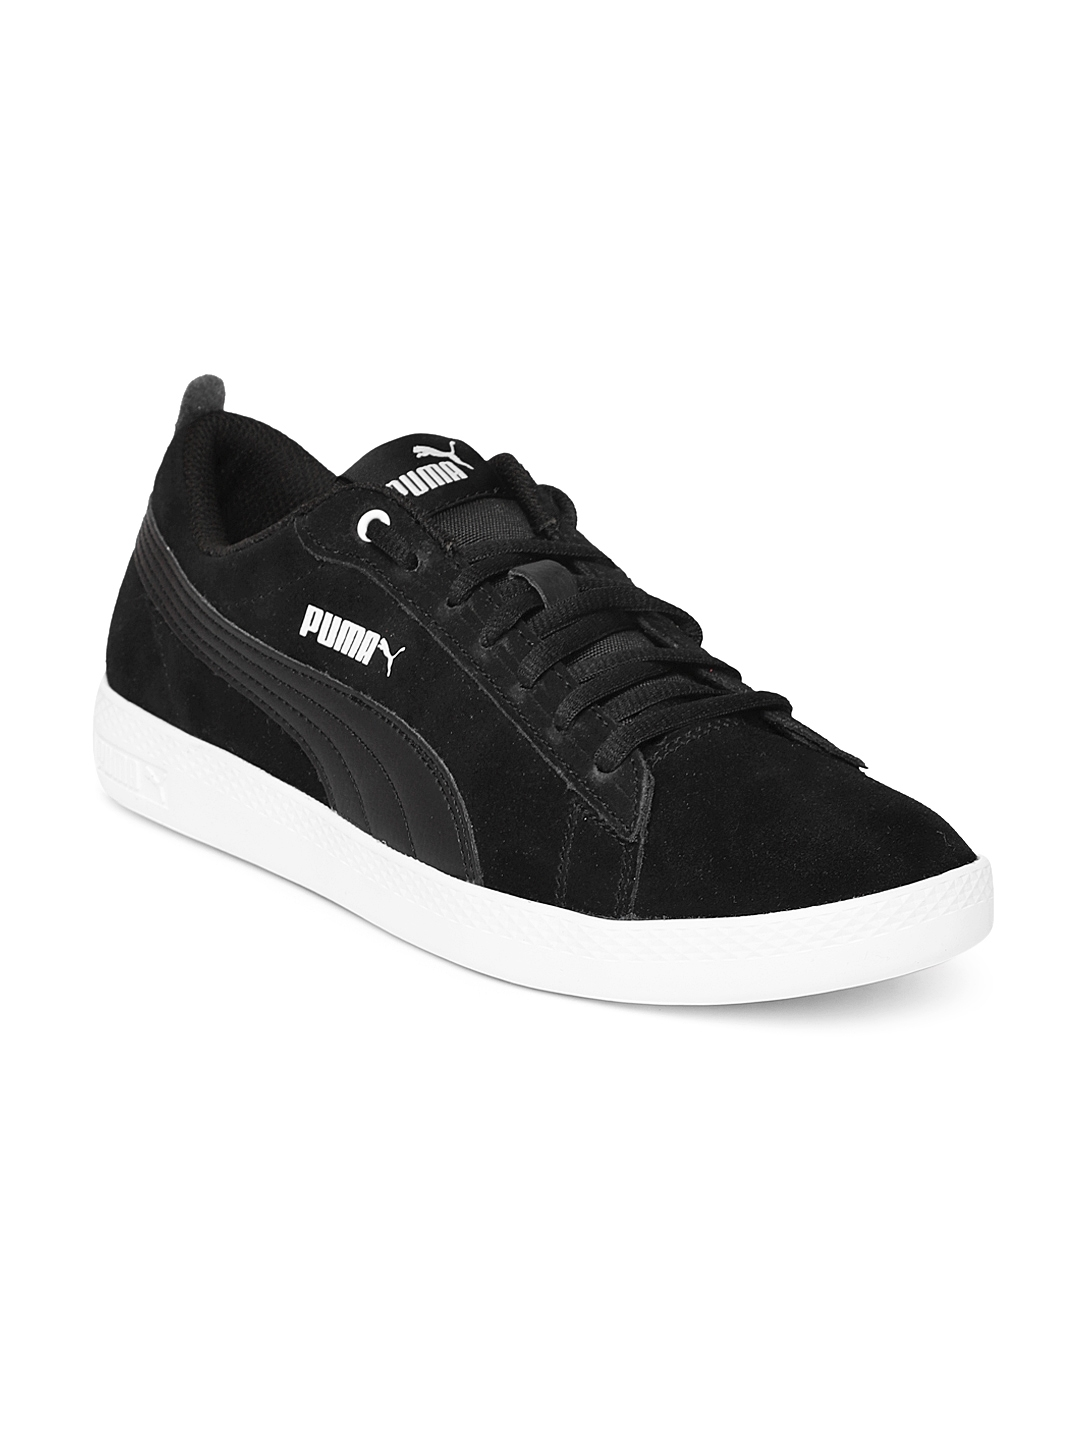 256c819201b Buy Puma Women Black Smash V2 Suede Sneakers - Casual Shoes for ...